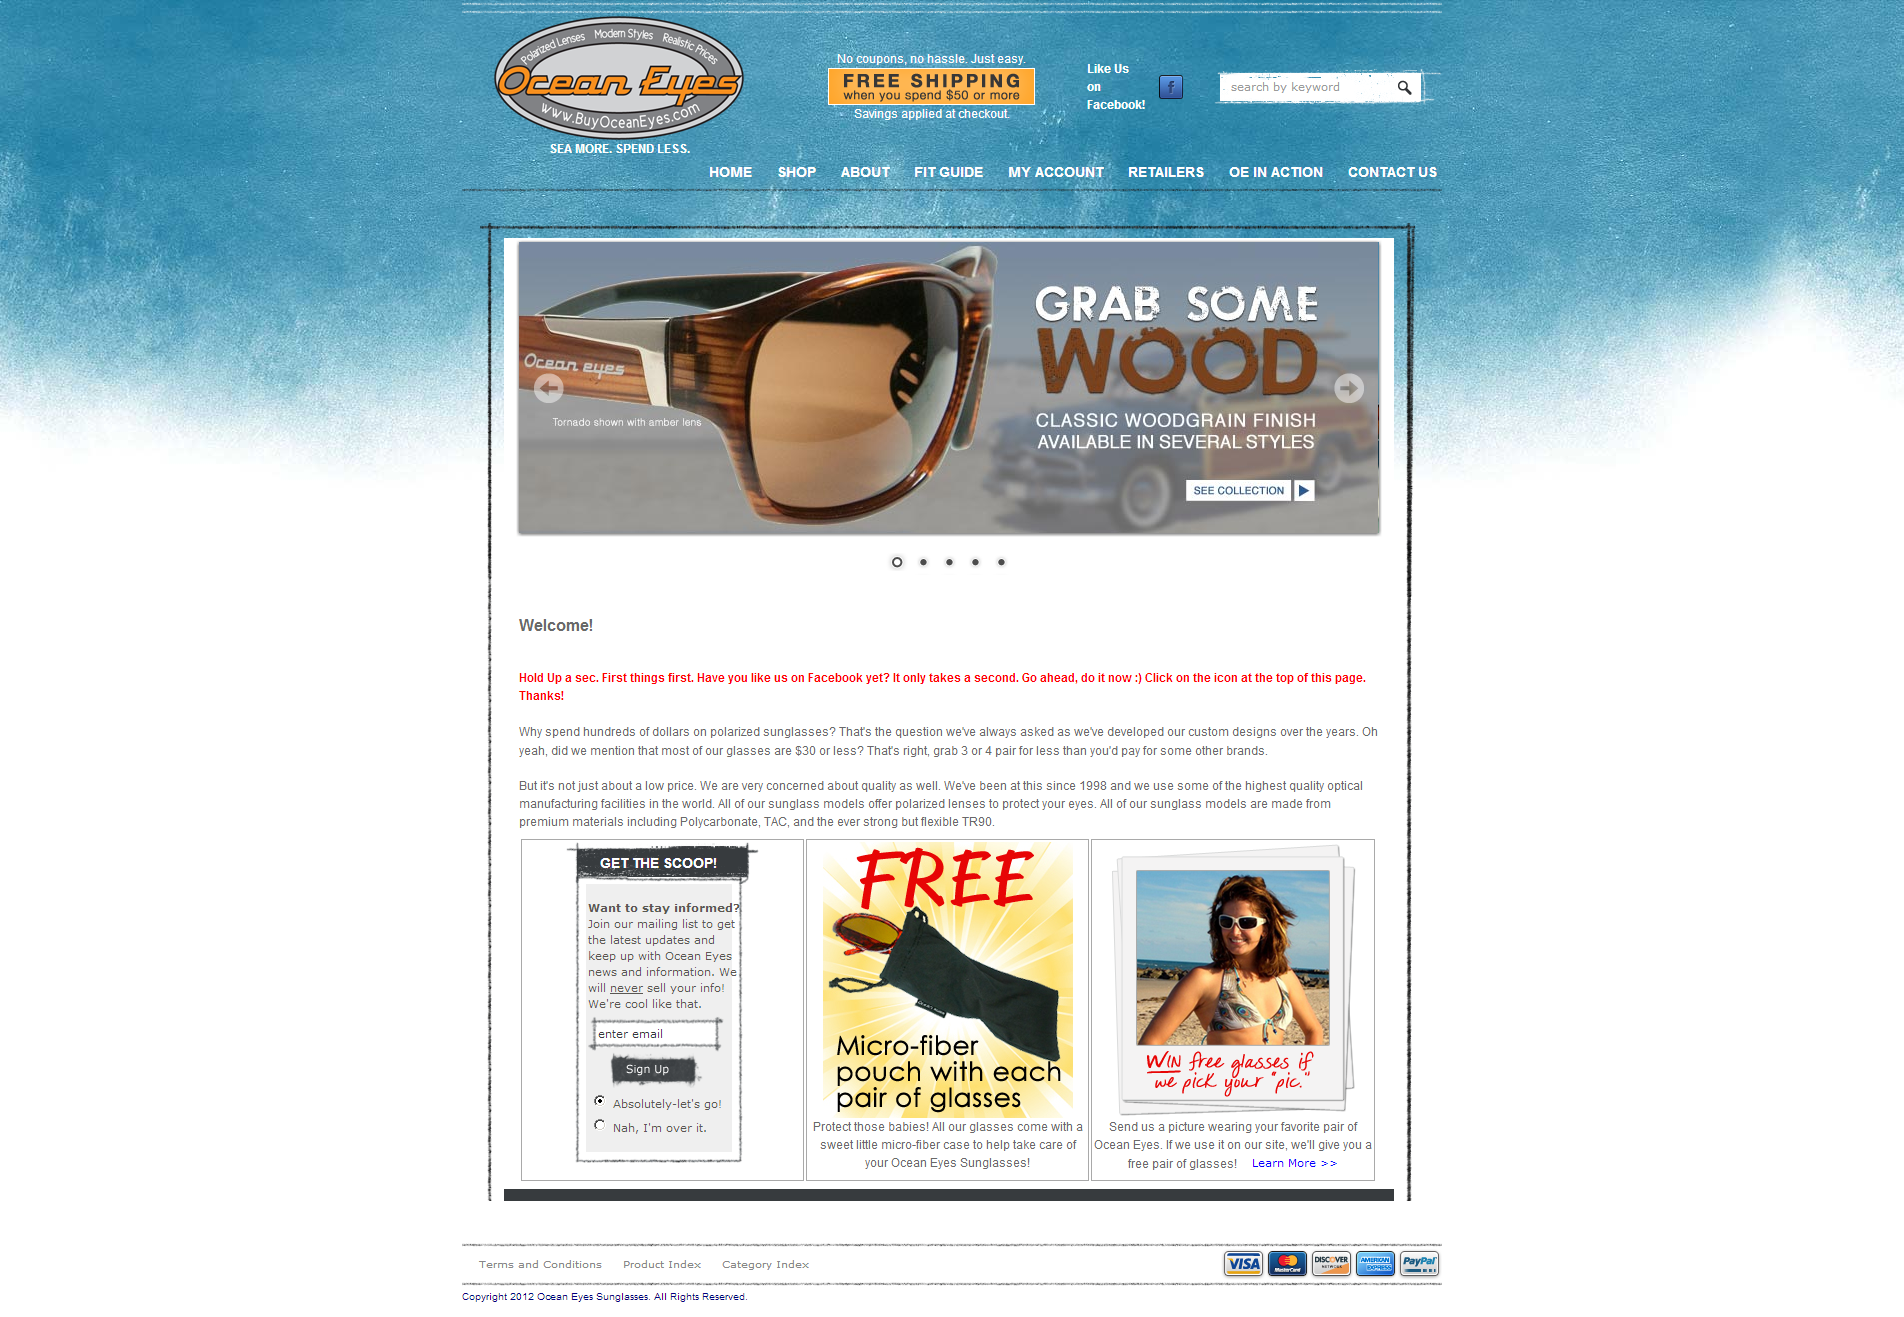 eac61d3d16ea Merchant Marketing Spotlight  Ocean Eyes Polarized Sunglasses